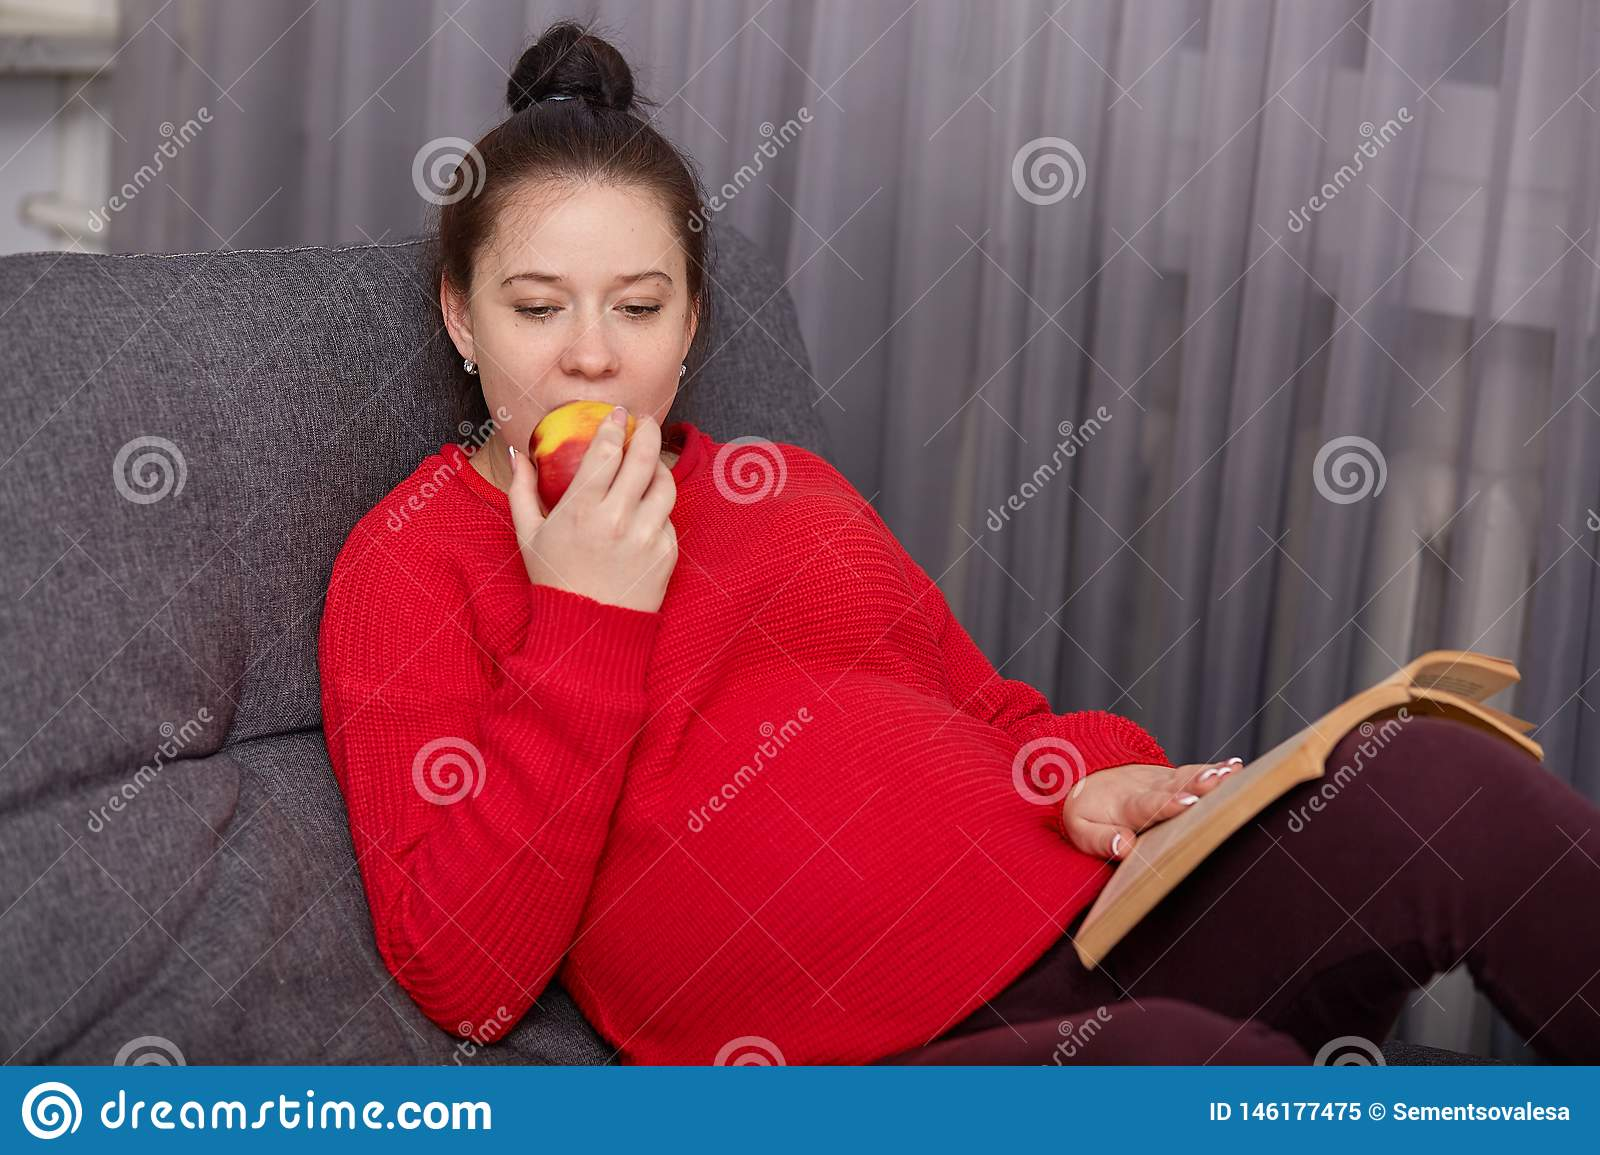 Photo of pregnant woman wears red sweater and maroon leggins, lies on comfortable grey sofa, eating apple, reading book about